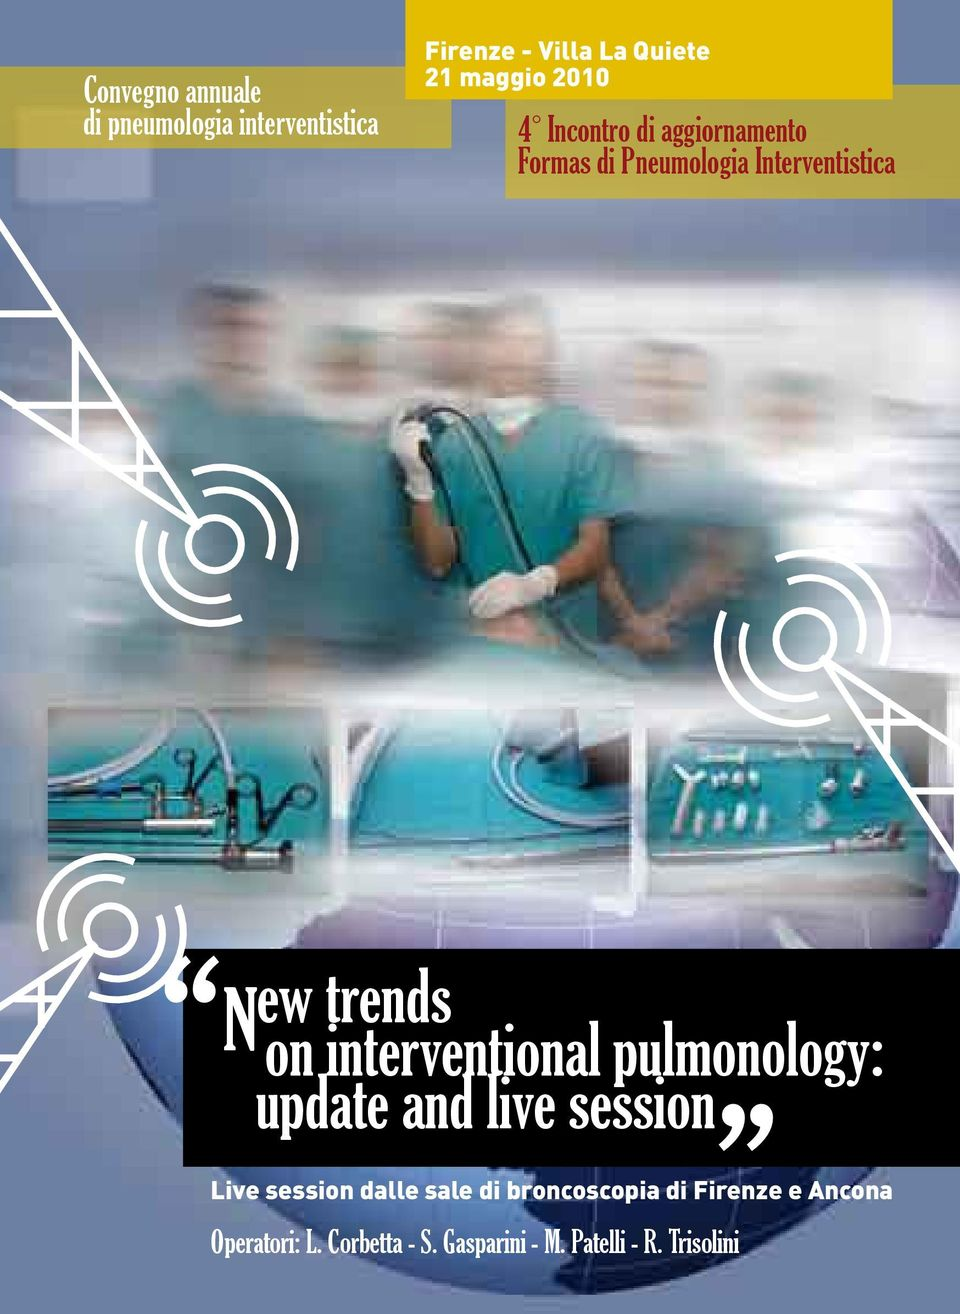 interventional pulmonology: update and live session Live session dalle sale di